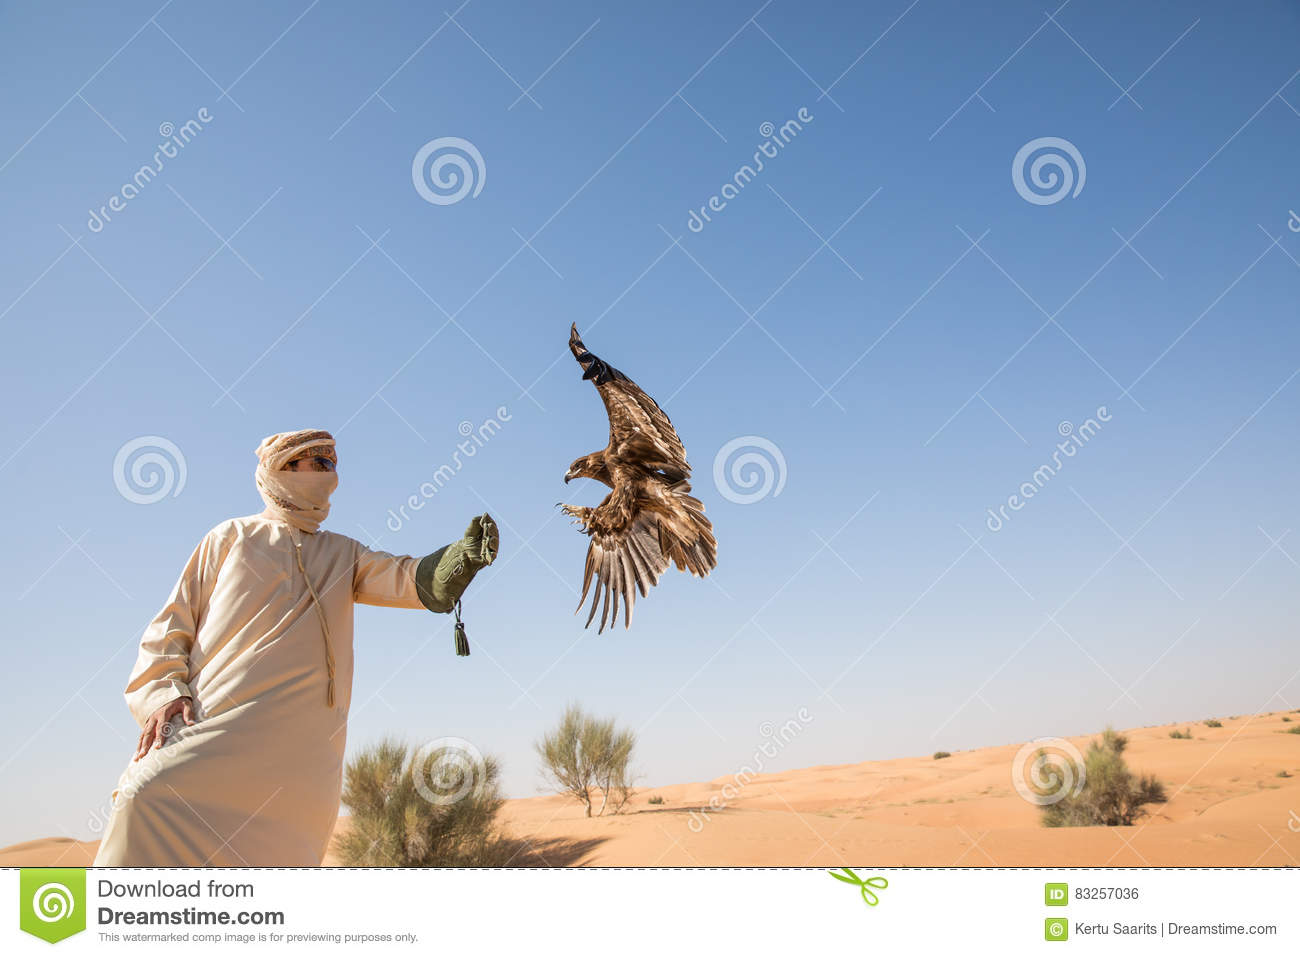 Greater Spotted Eagle During A Desert Falconry Show In Dubai, UAE